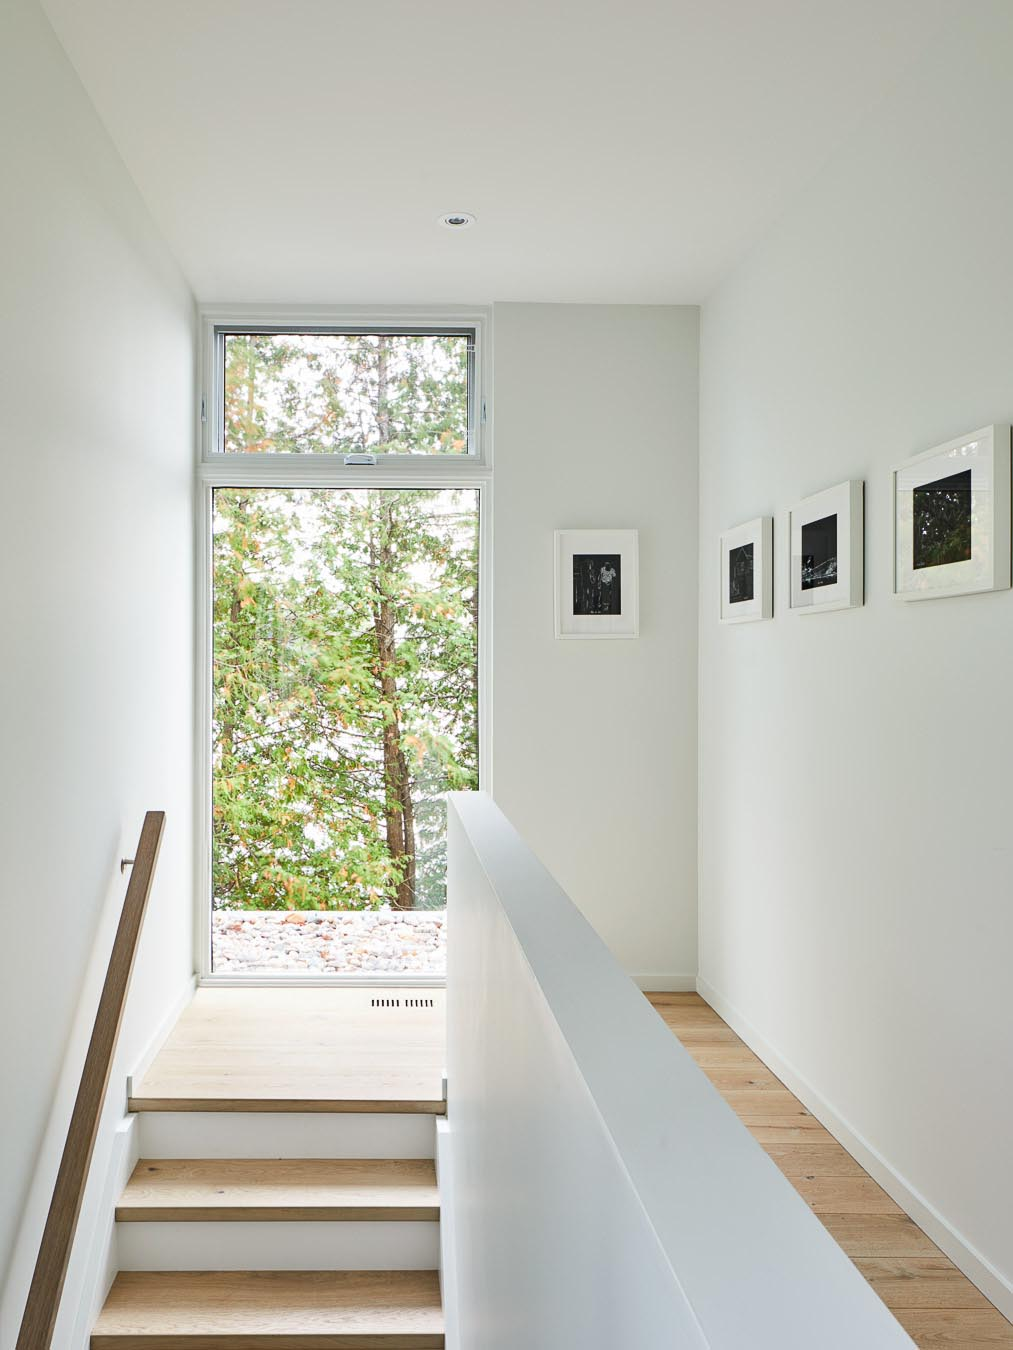 A white interior with wood stair treads and flooring.